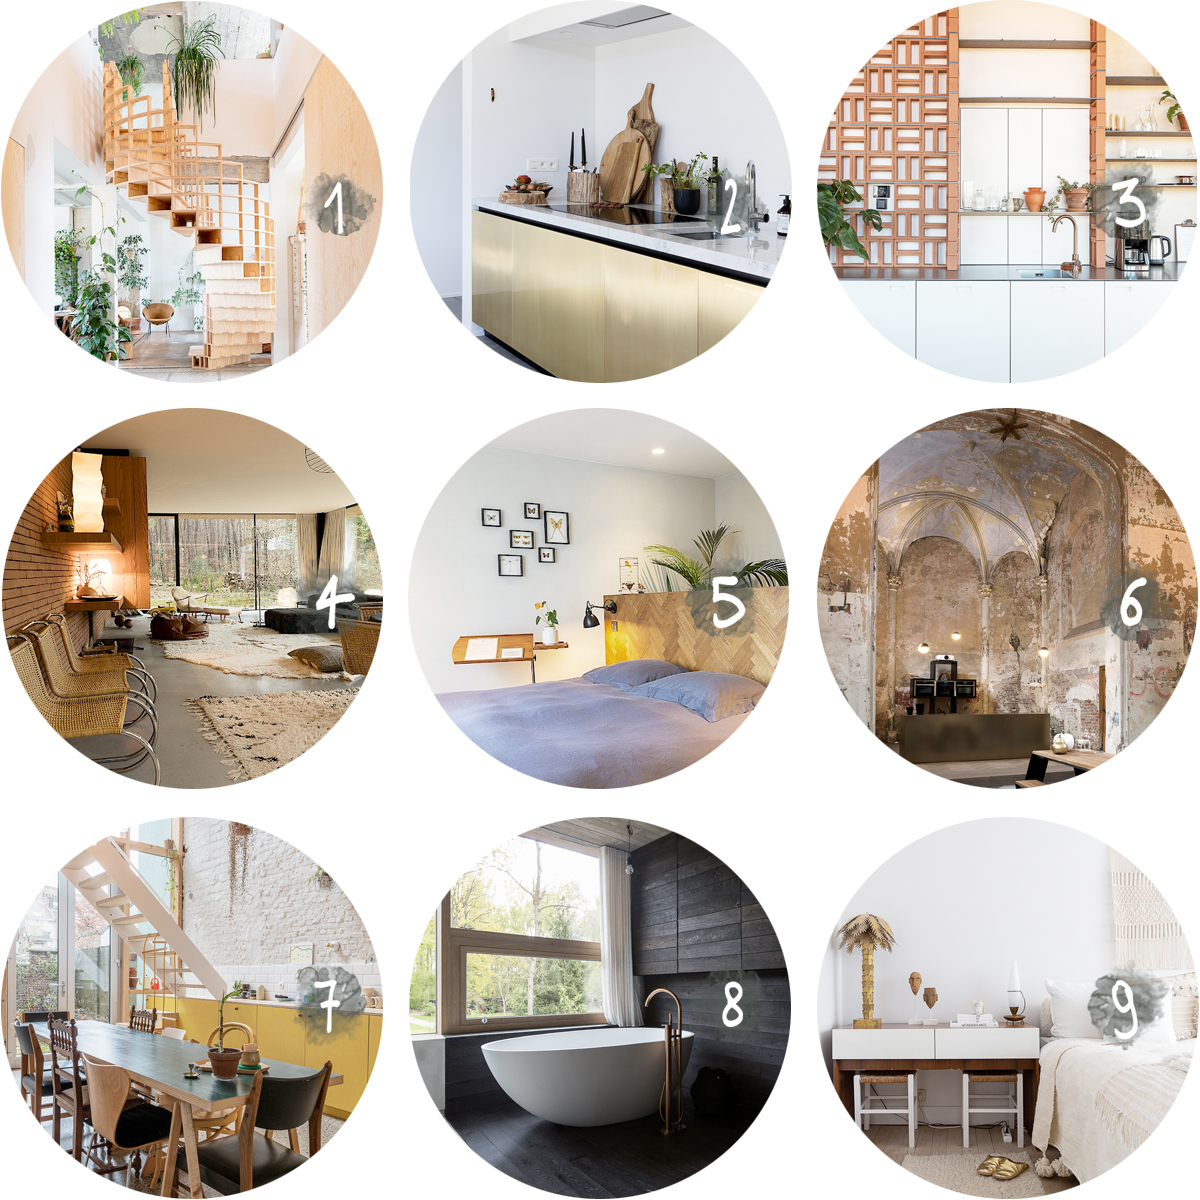 COLLECTION_ interior inspiration by Studio Scott via aupaysdesmerveillesblog.be